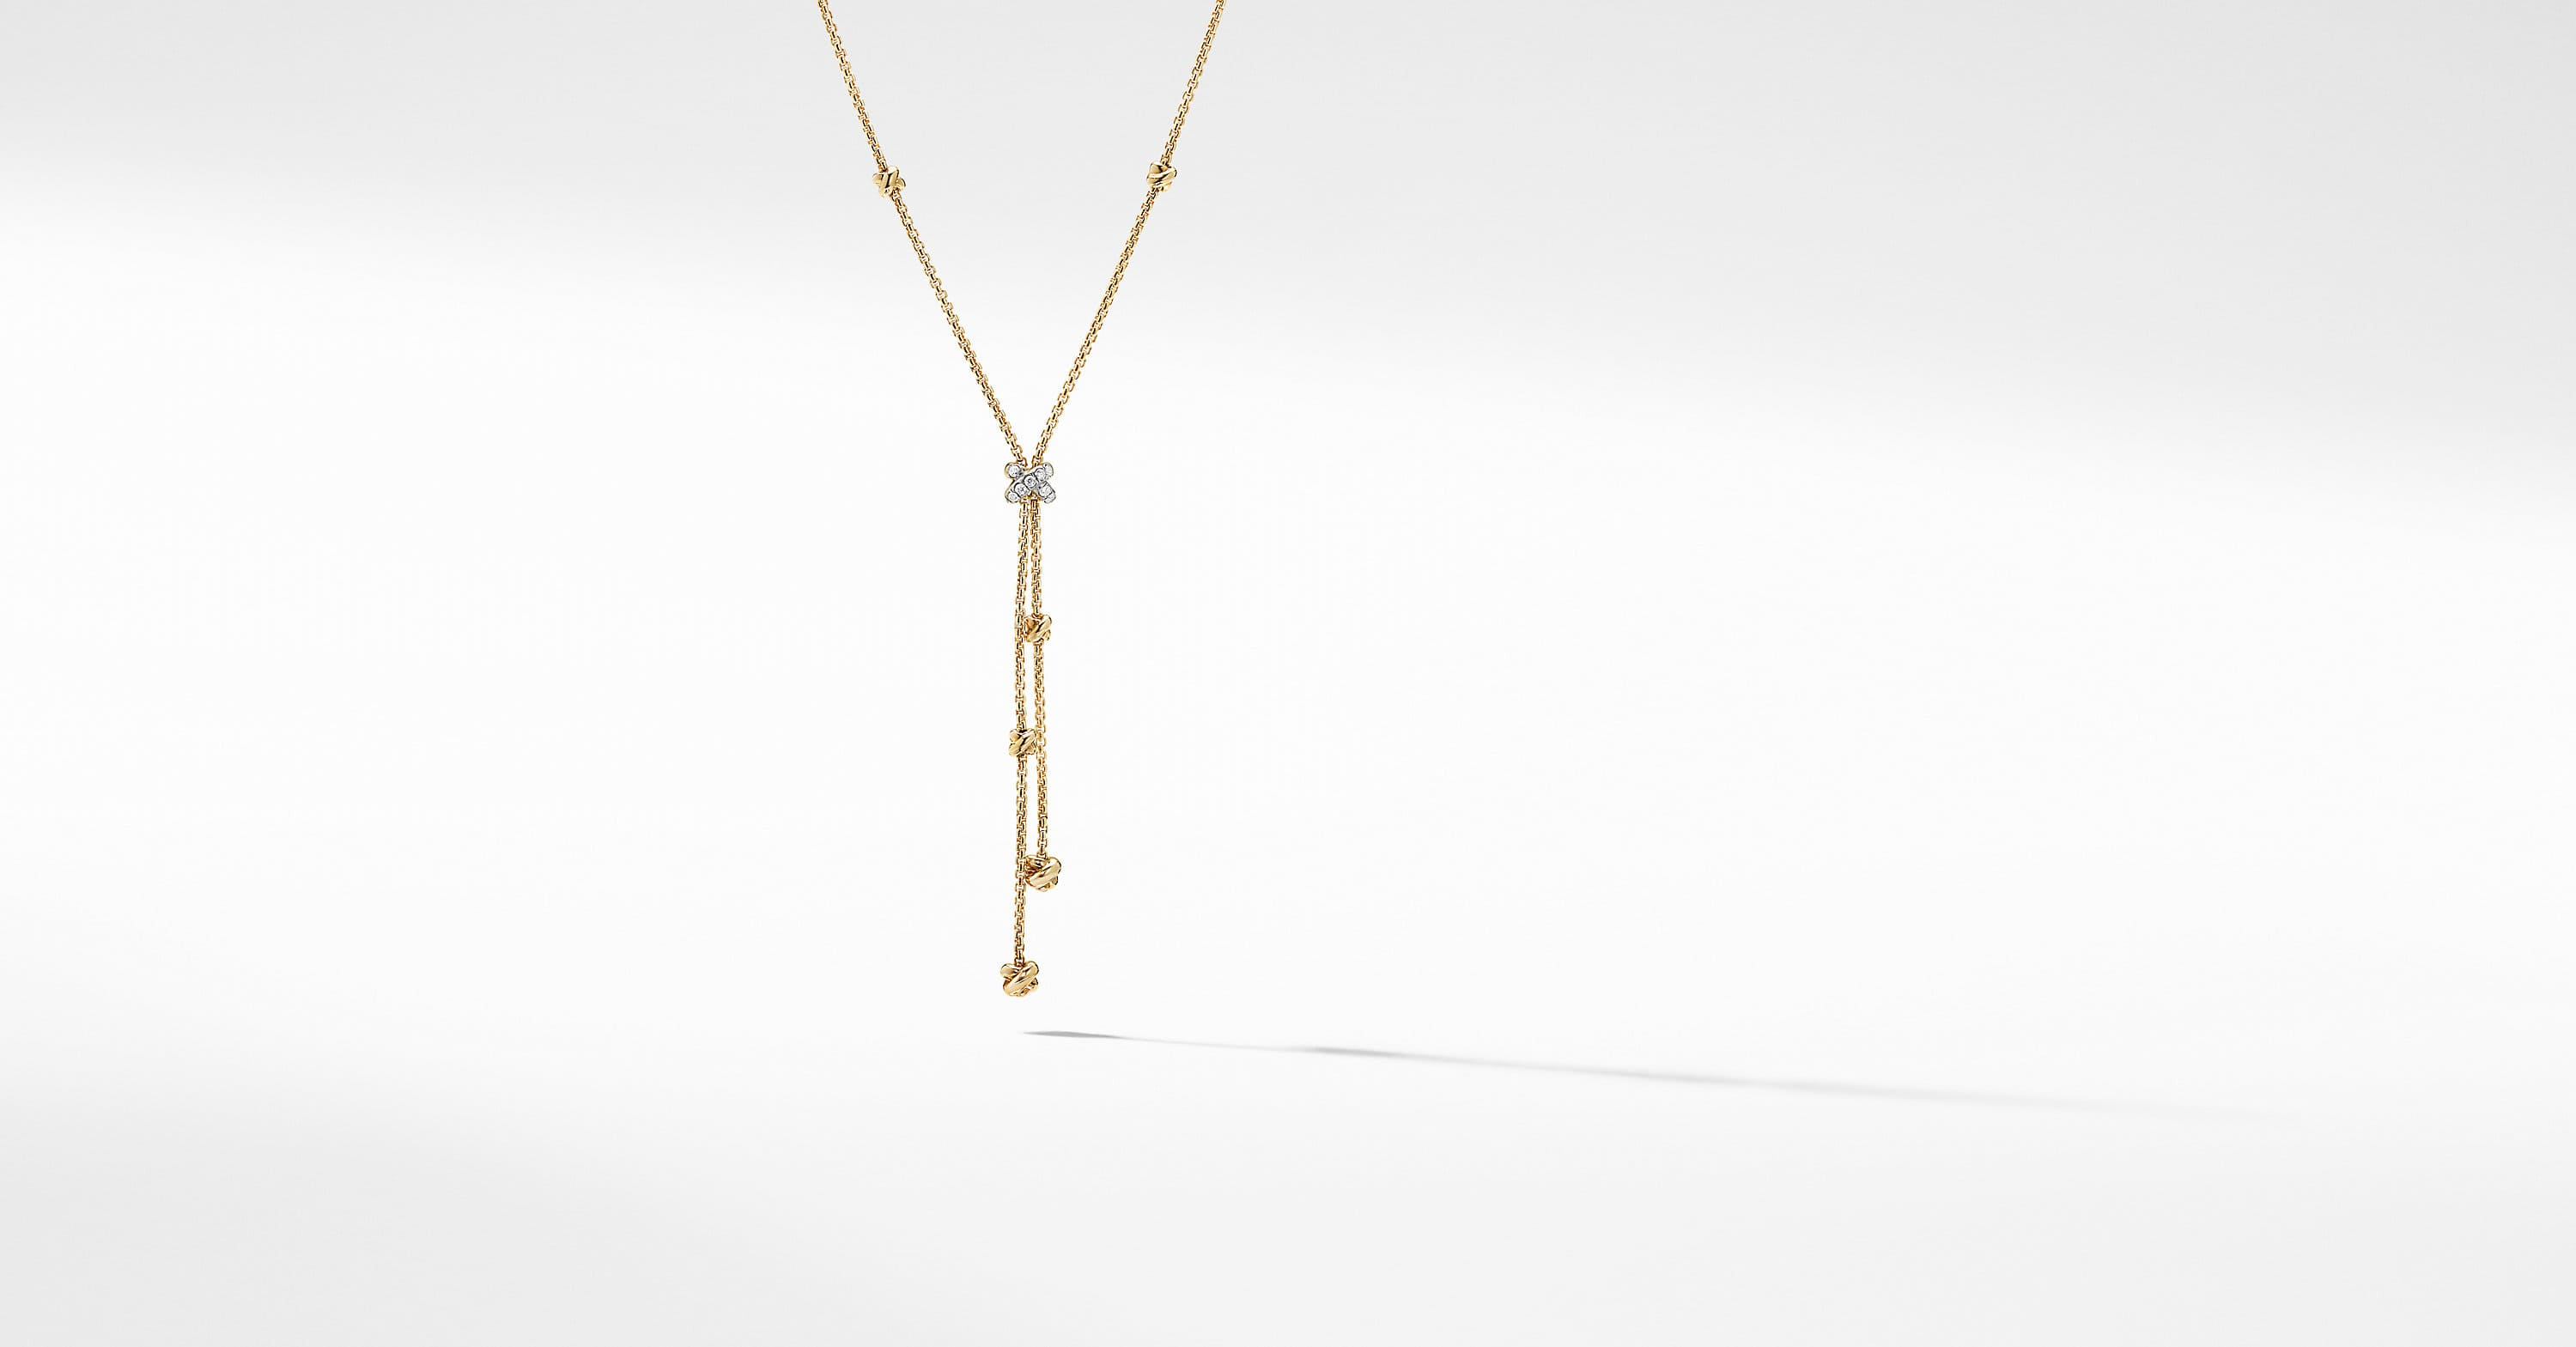 Petite Helena Y Necklace in 18K Yellow Gold with Diamonds